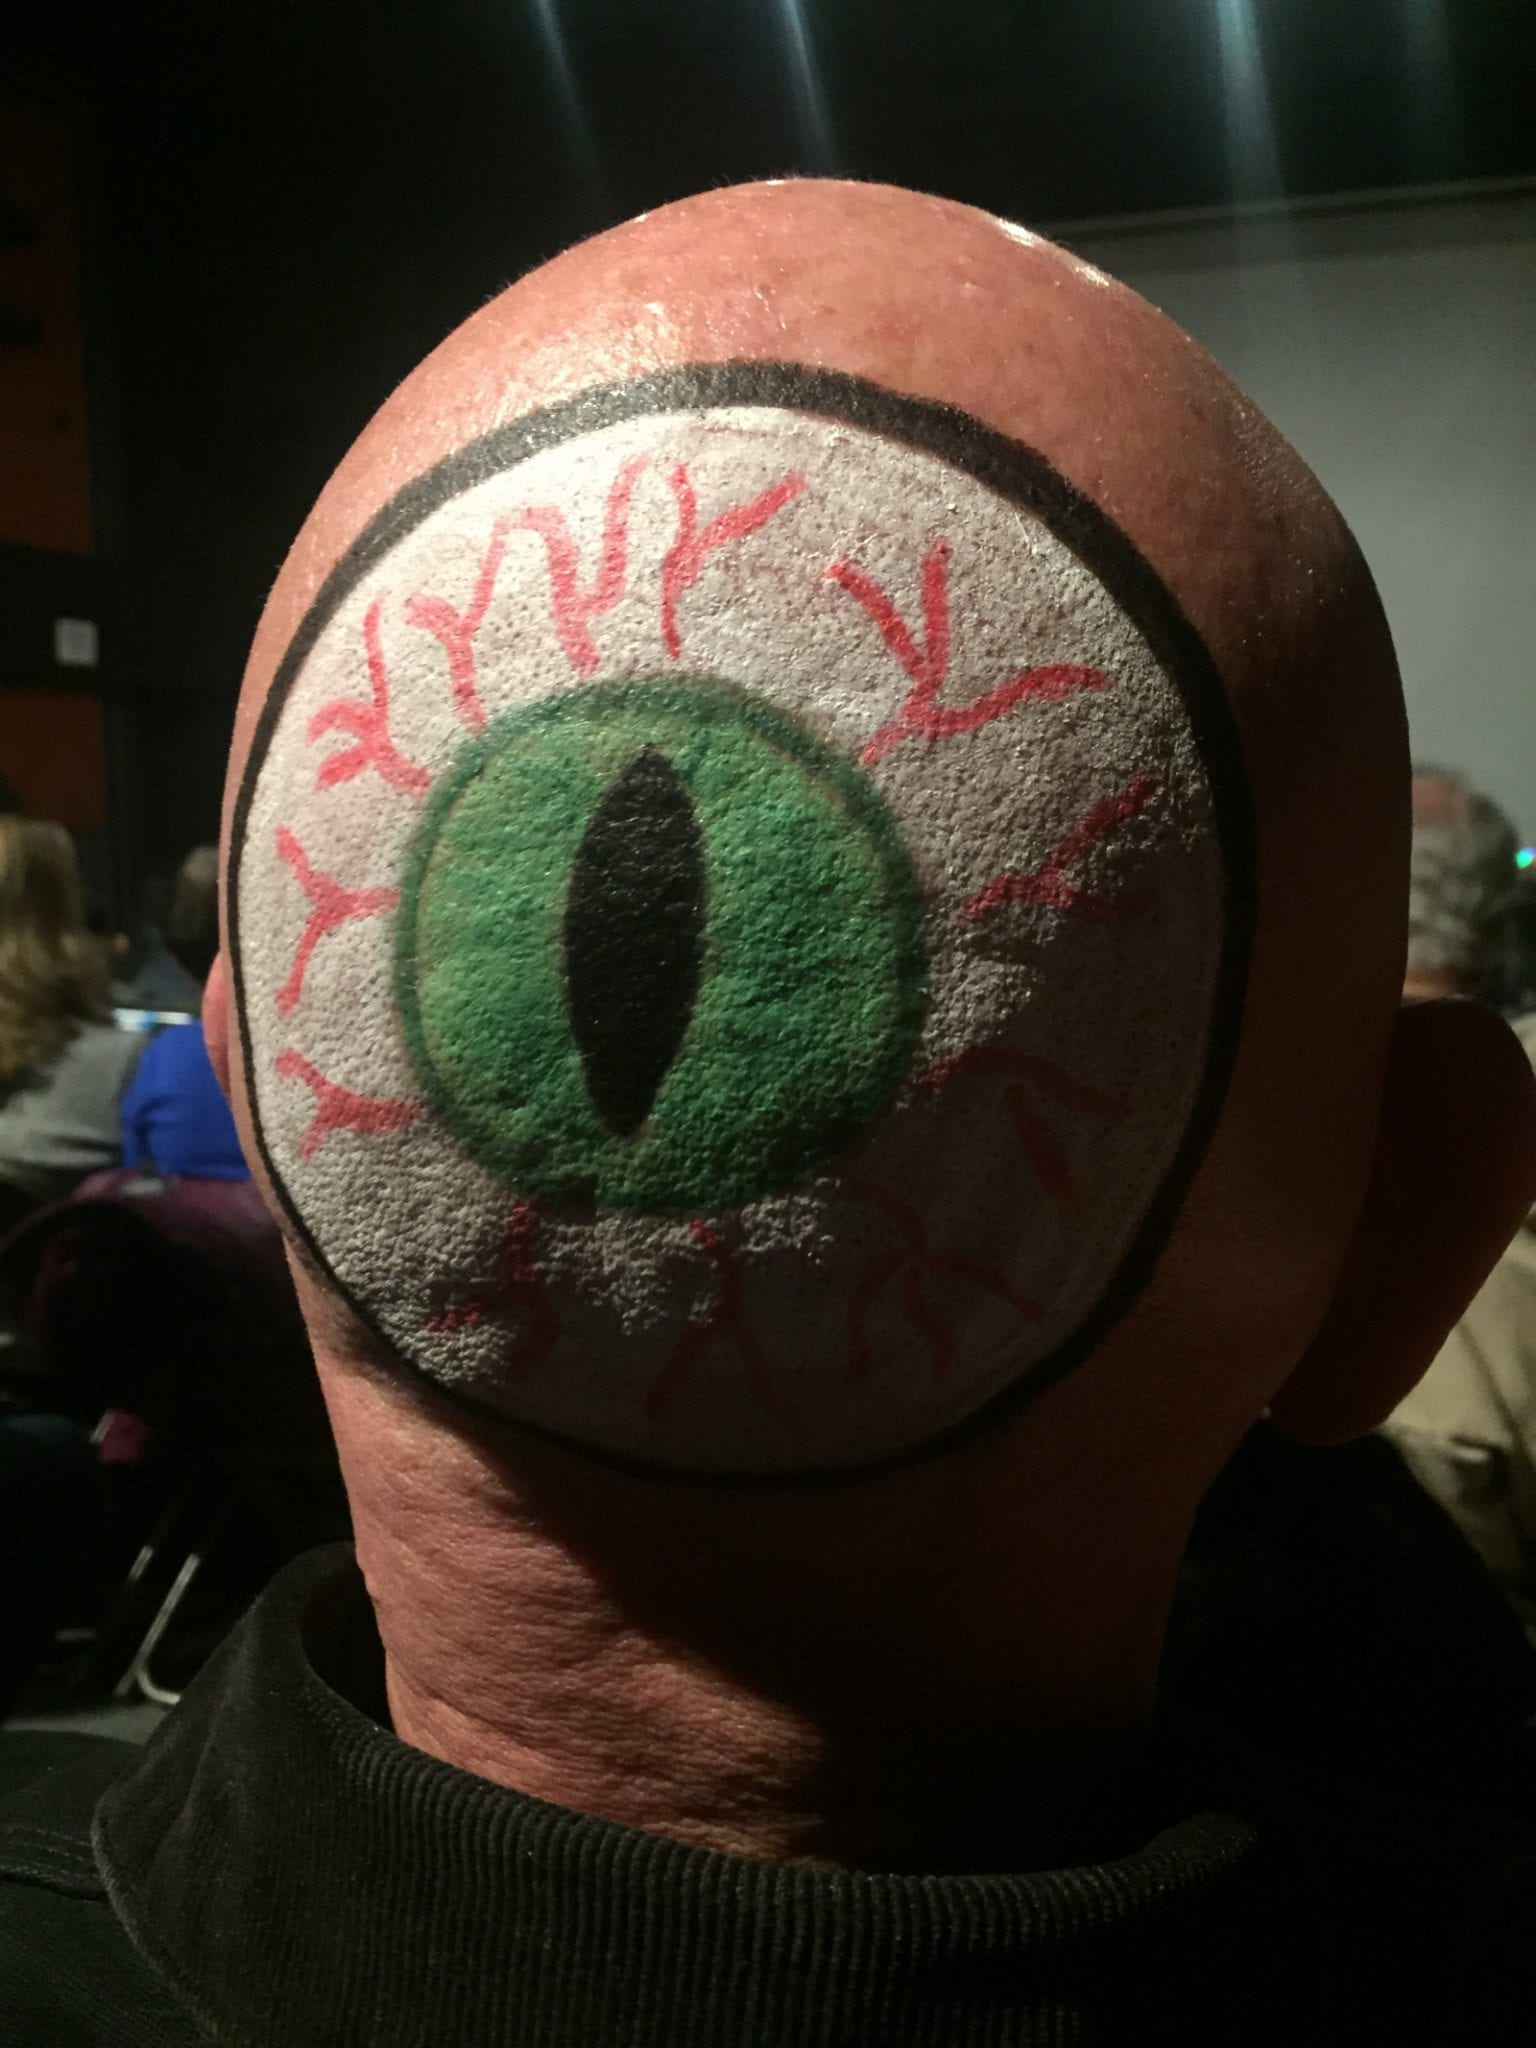 Mountain Living Person Eye On Back of Head